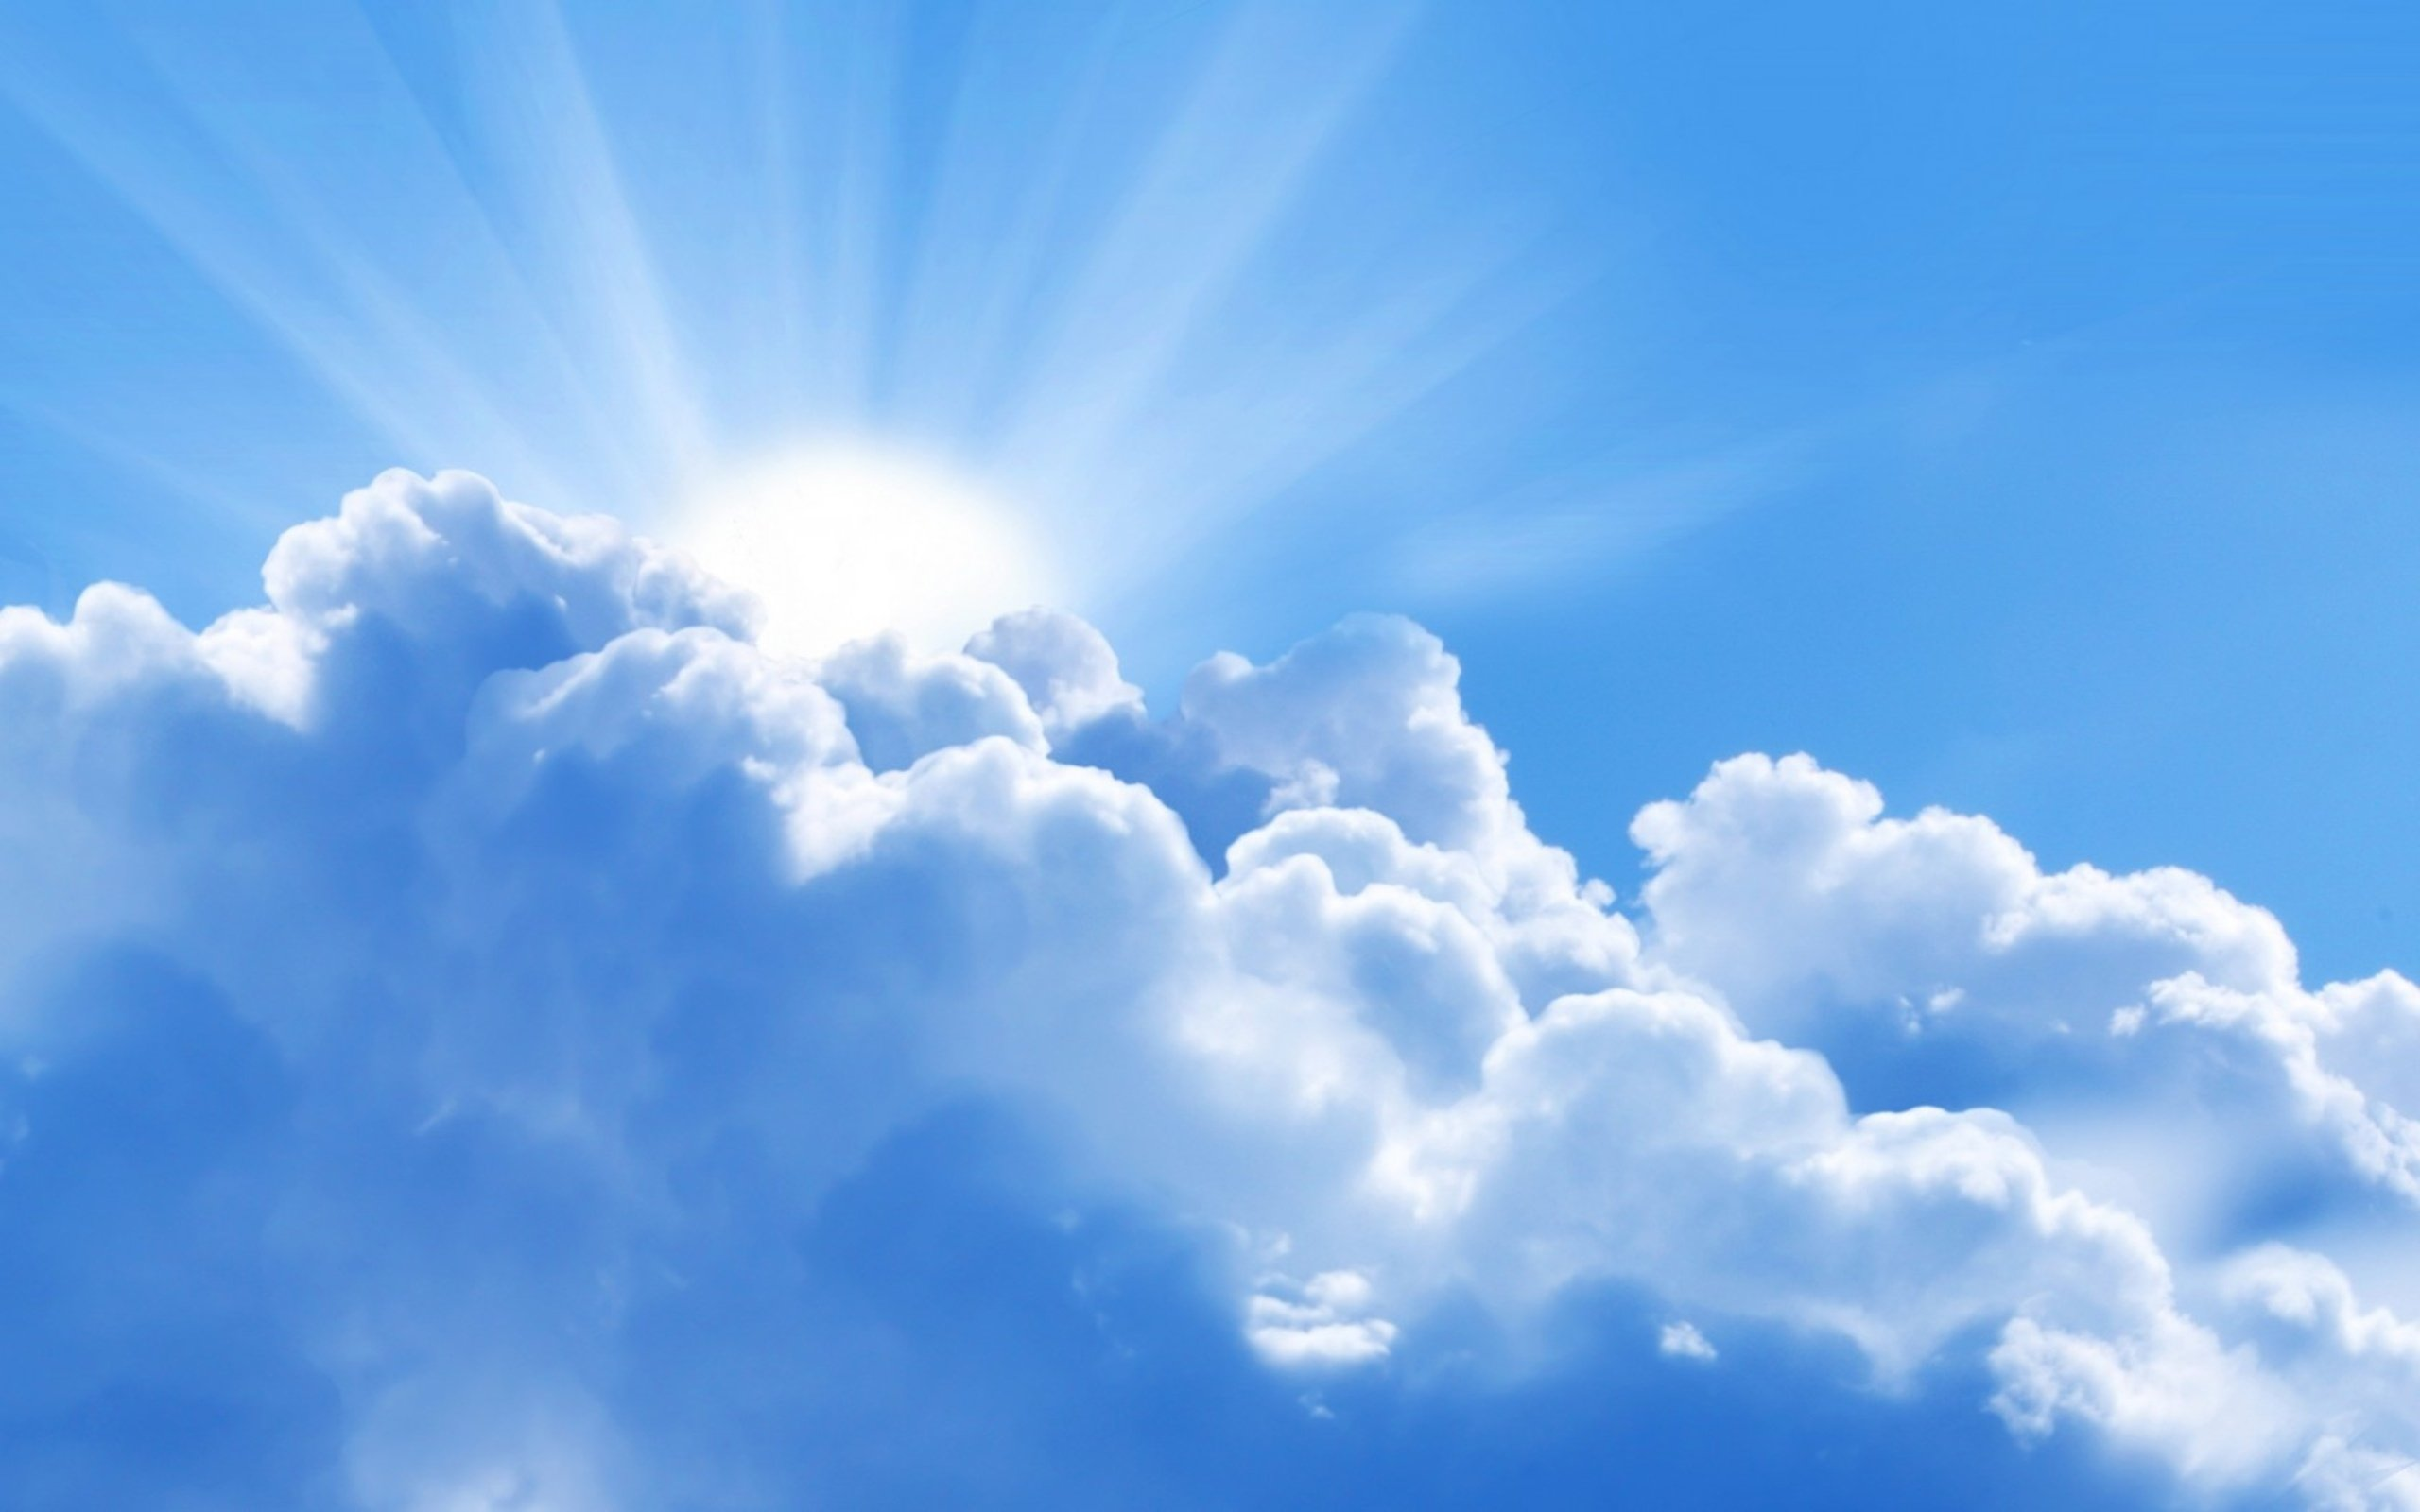 Clouds Wallpaper Download 2560x1600